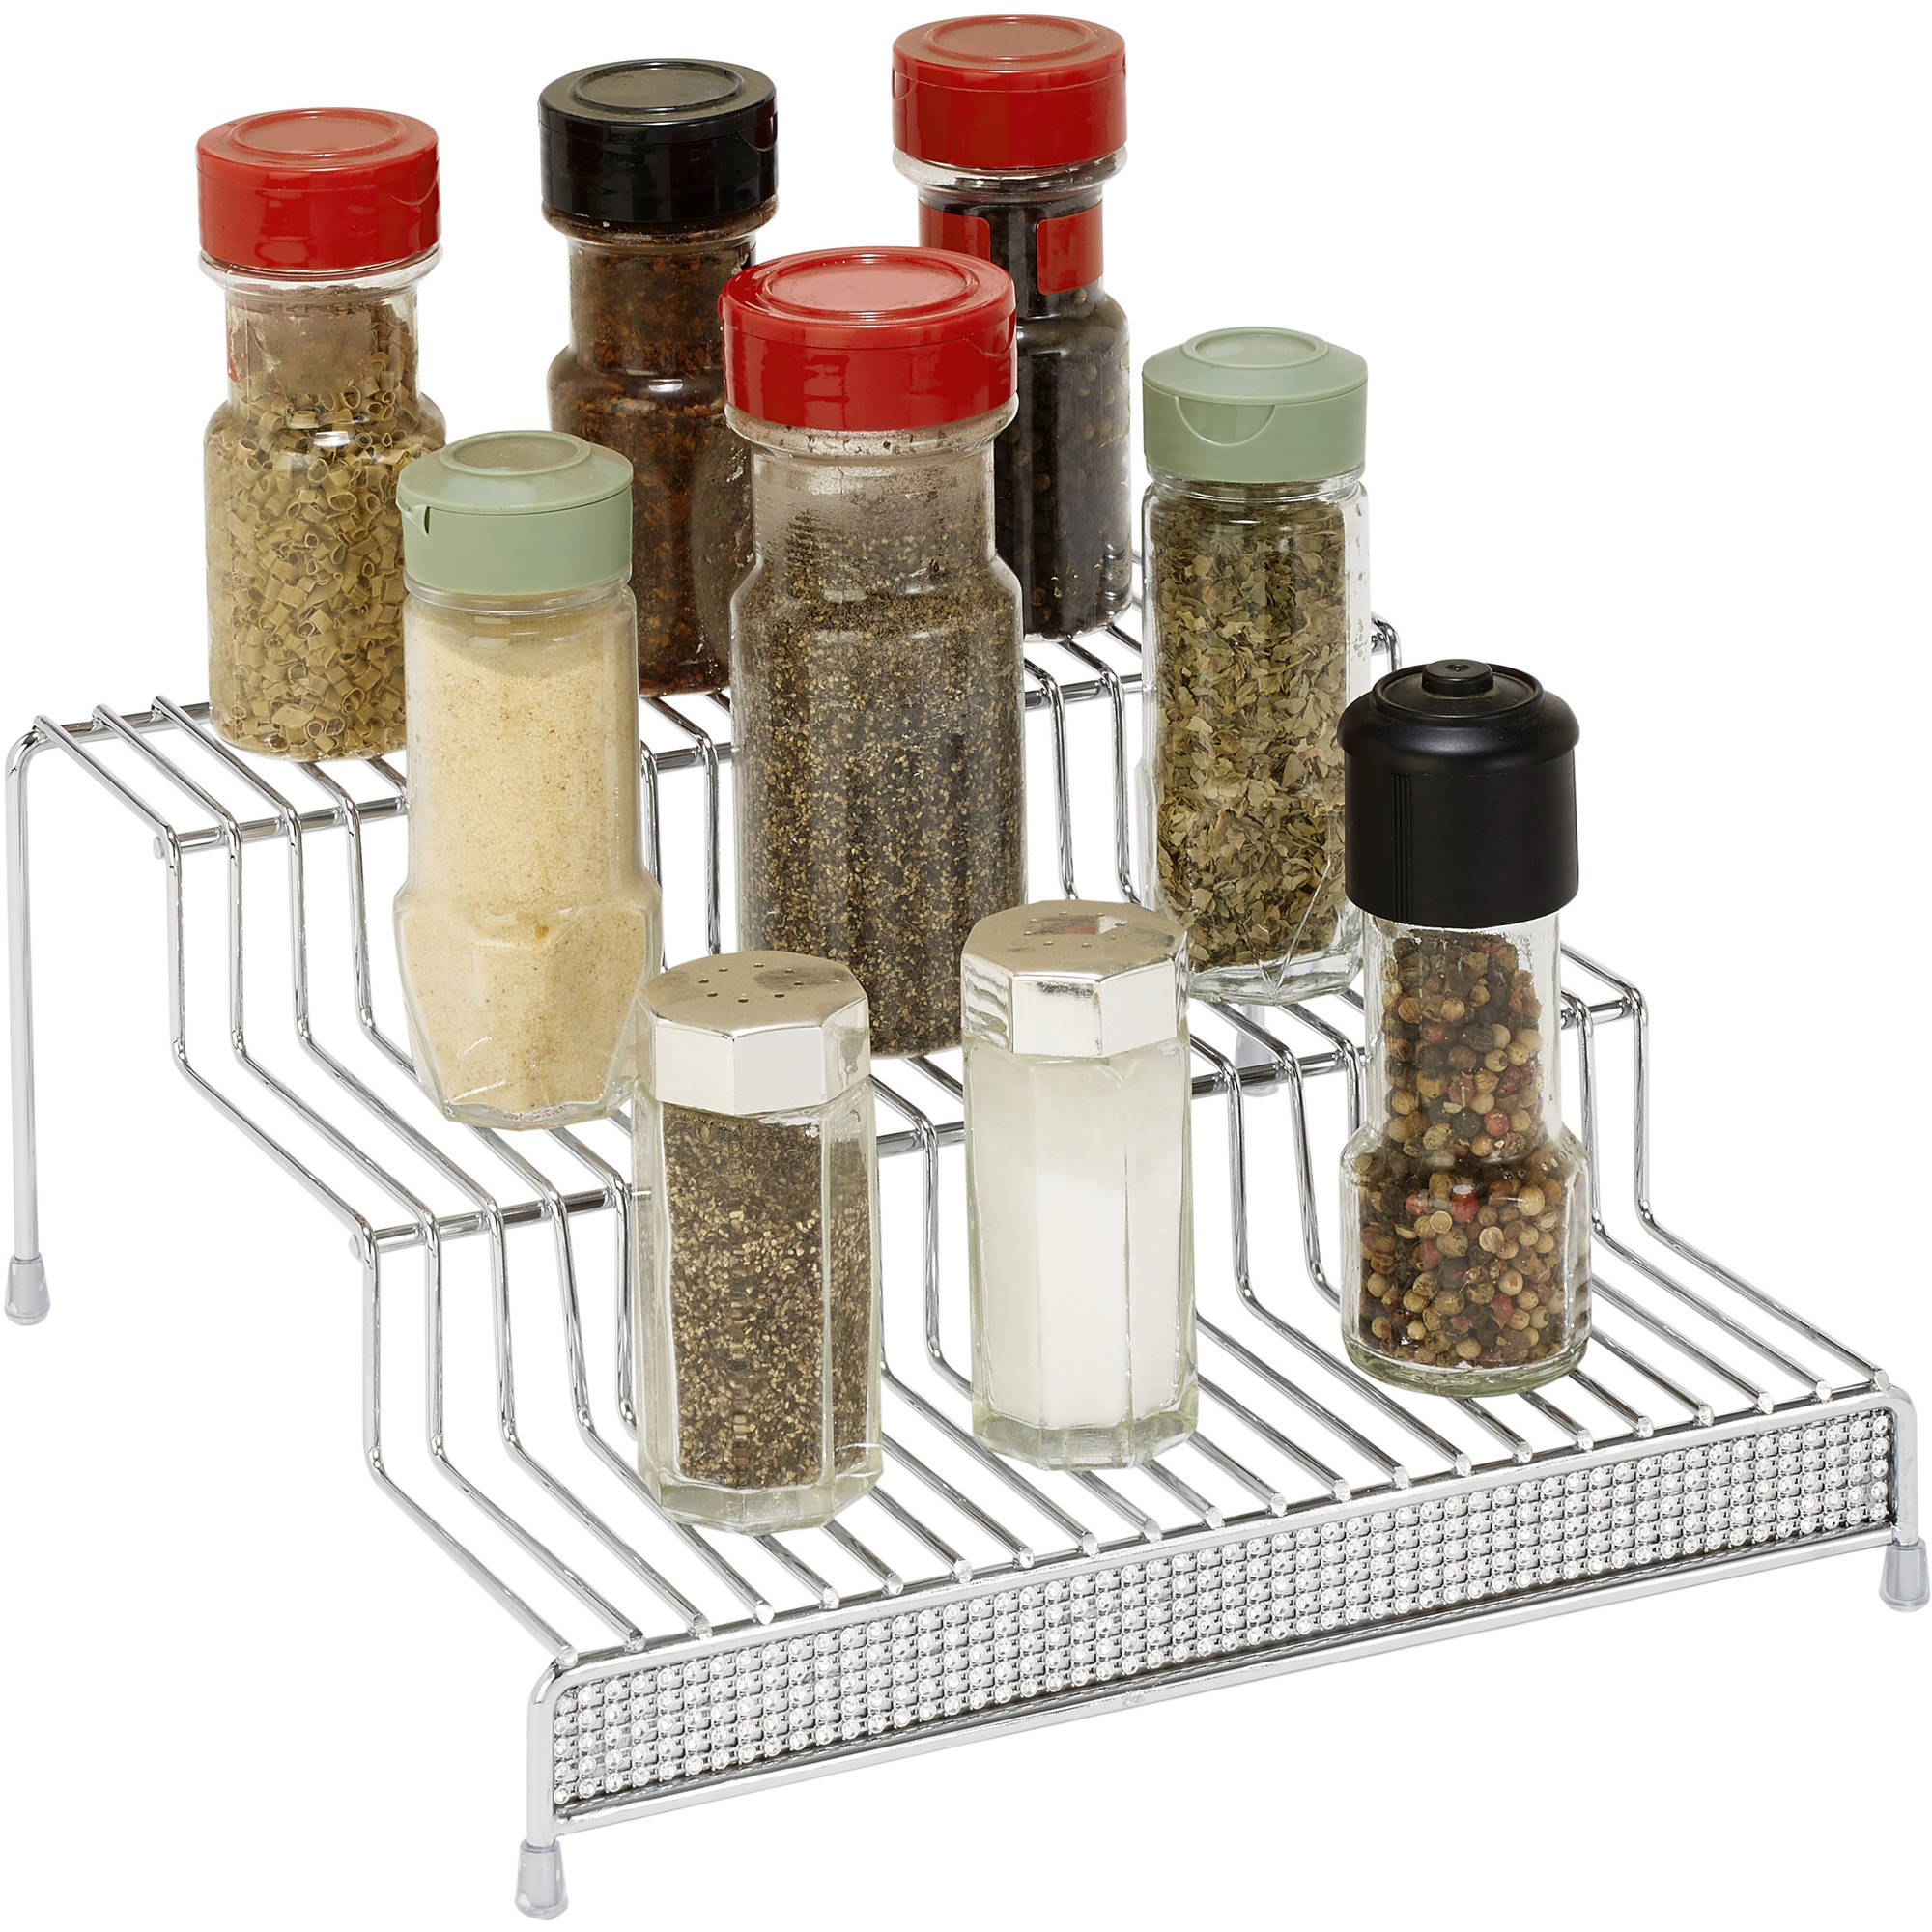 Simplify 3-Tier Spice Organizer, Chrome Pave Diamond Design